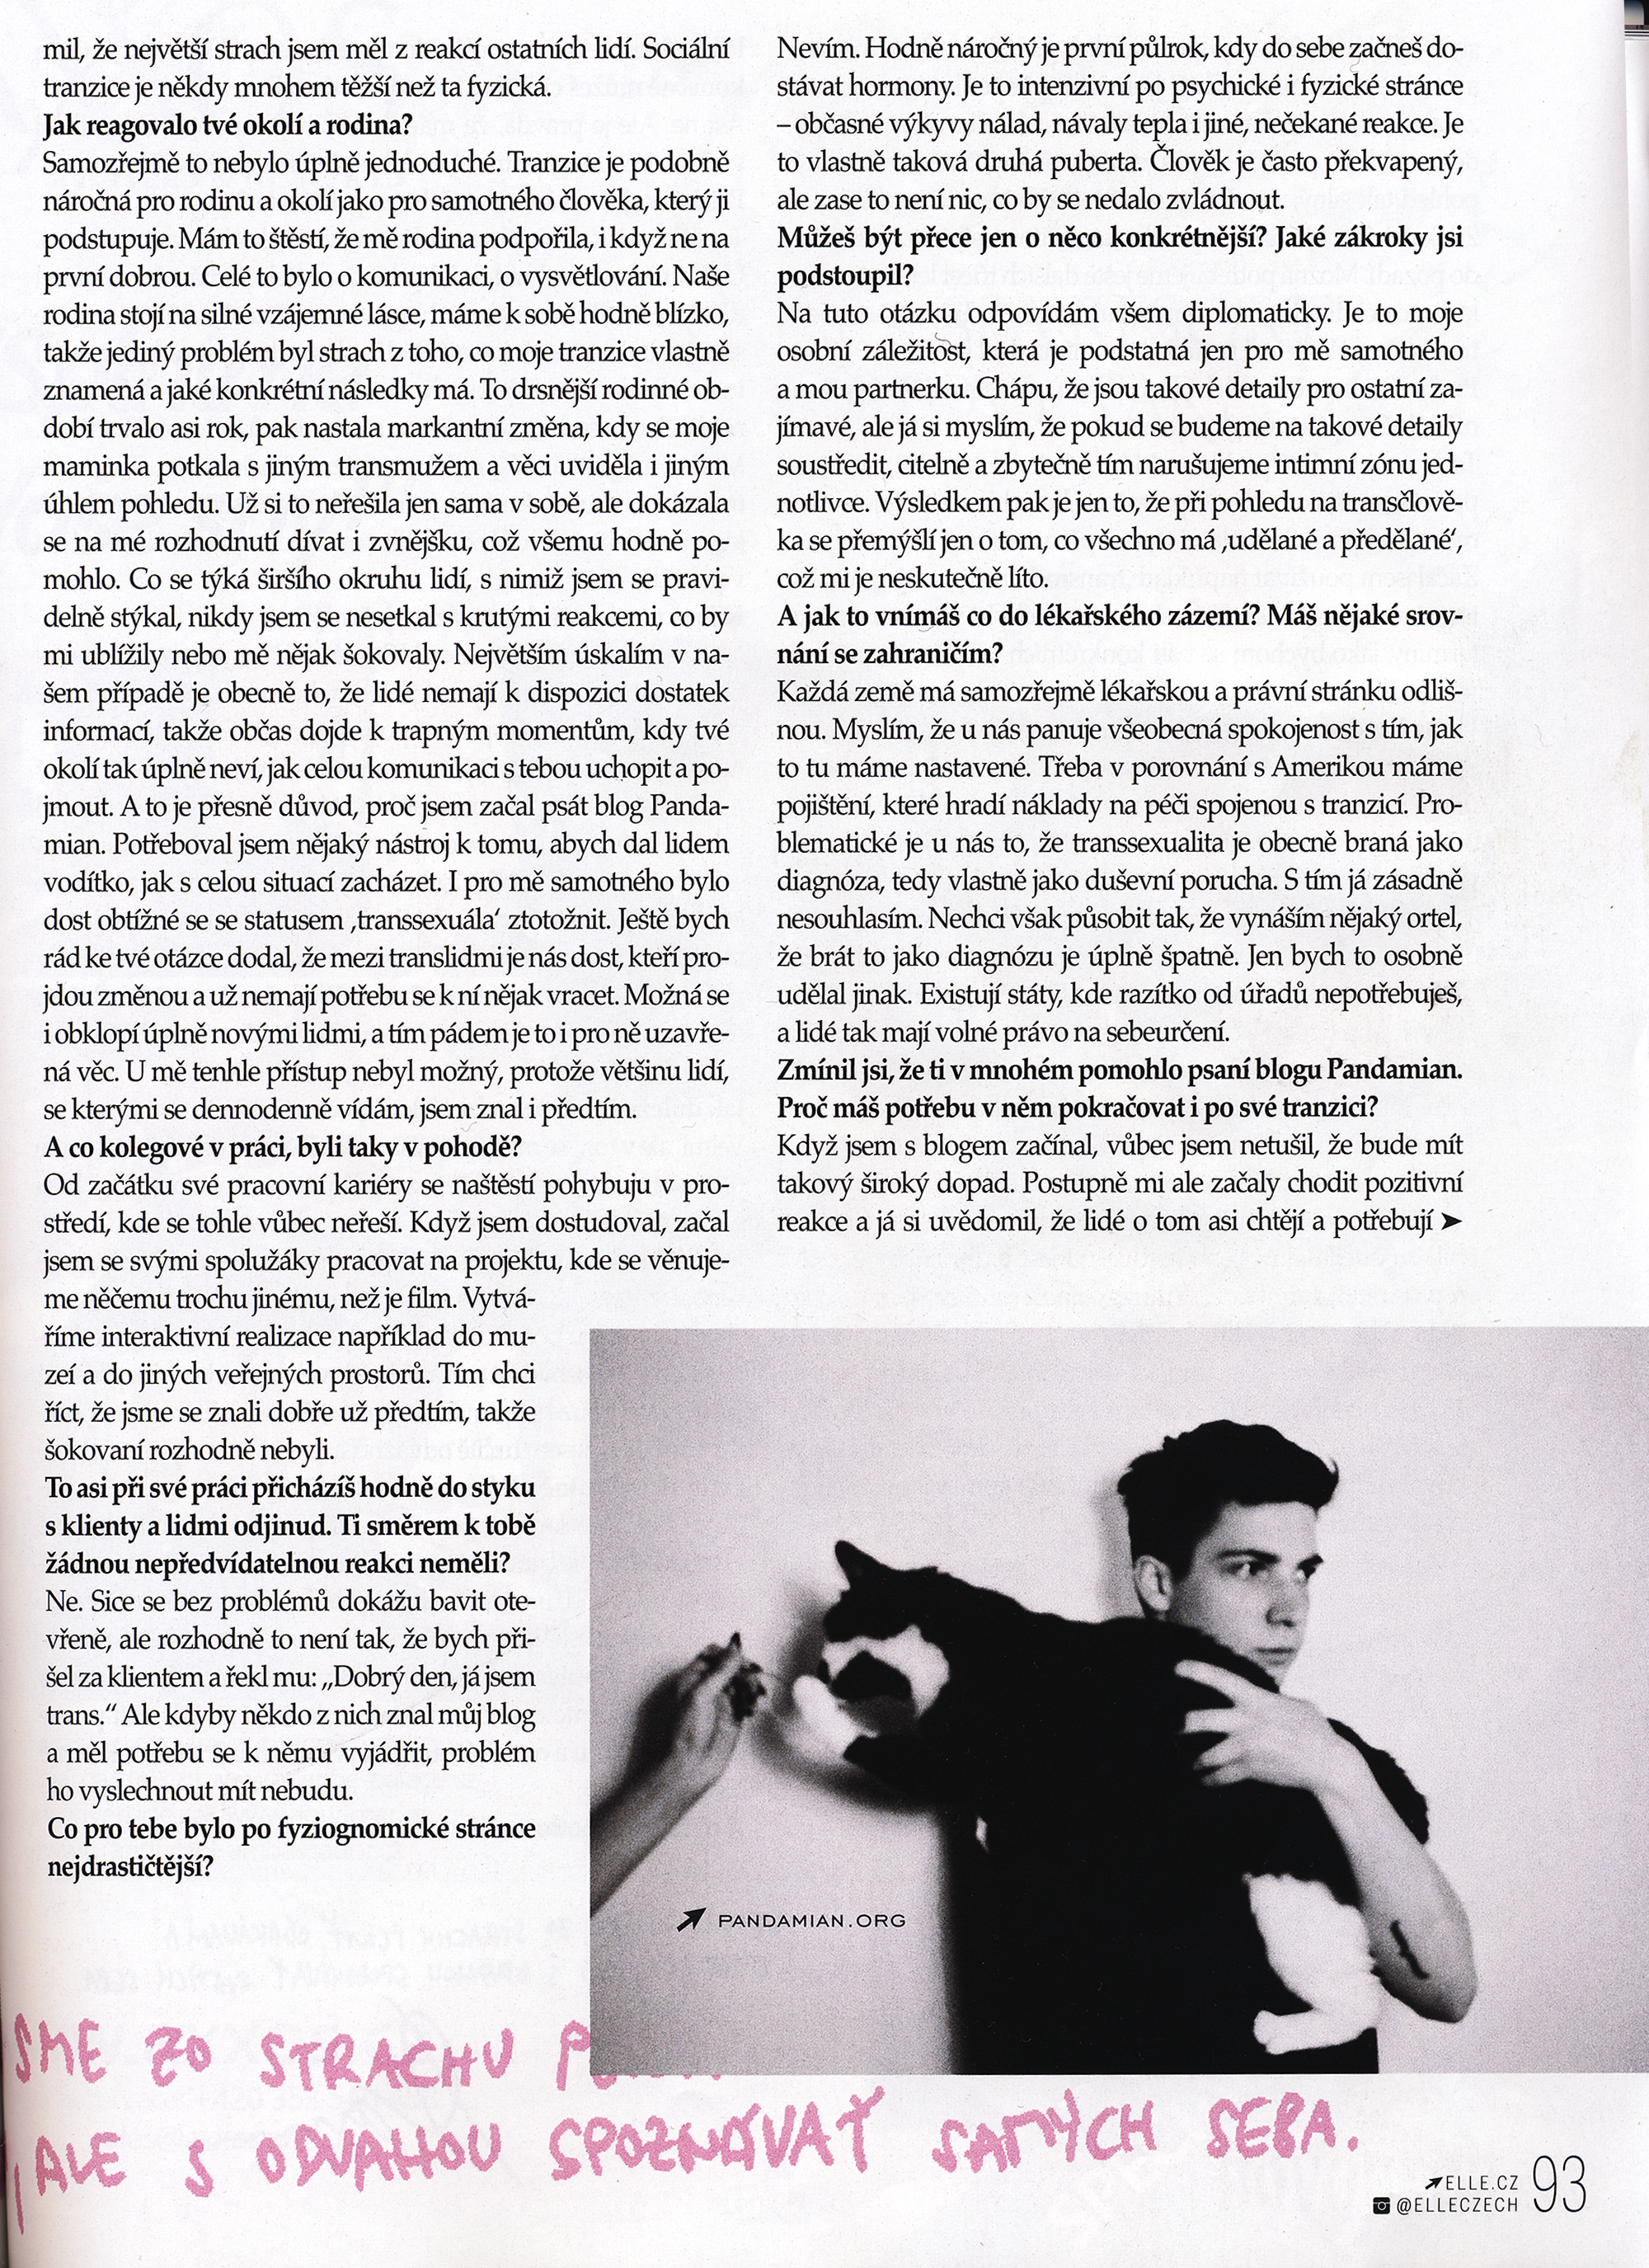 Scan10002.png